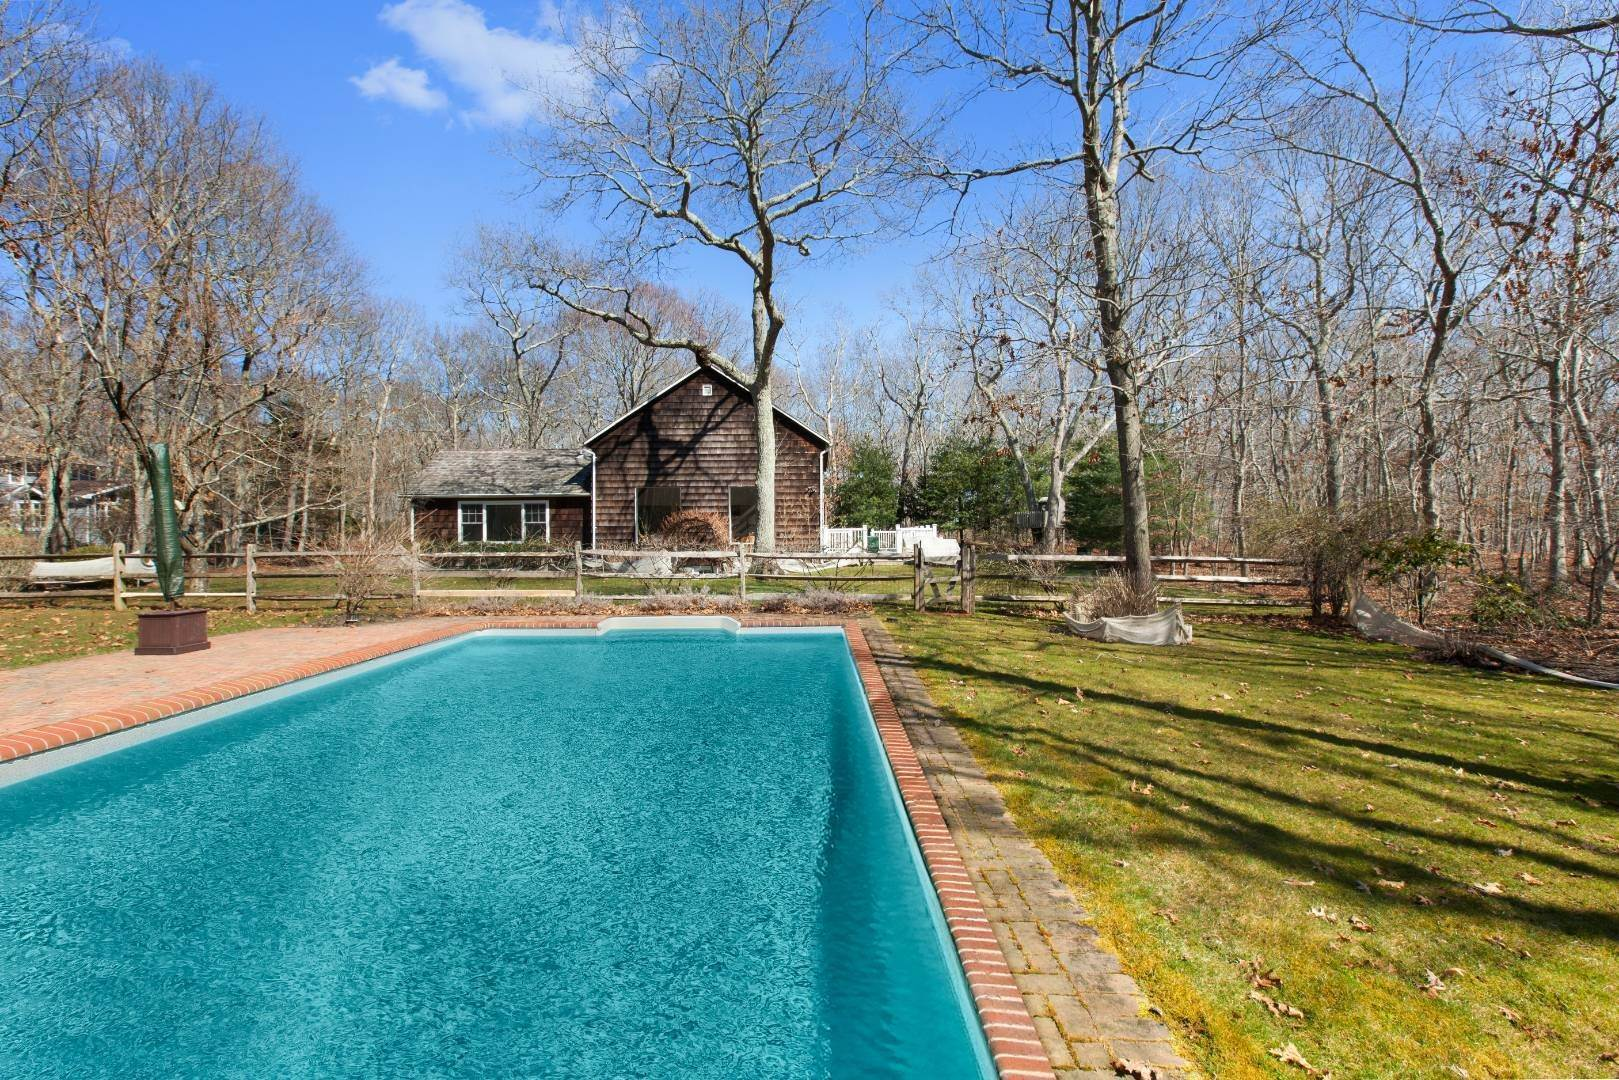 Single Family Home at Charming Water Mill Farmhouse Water Mill, NY 11976